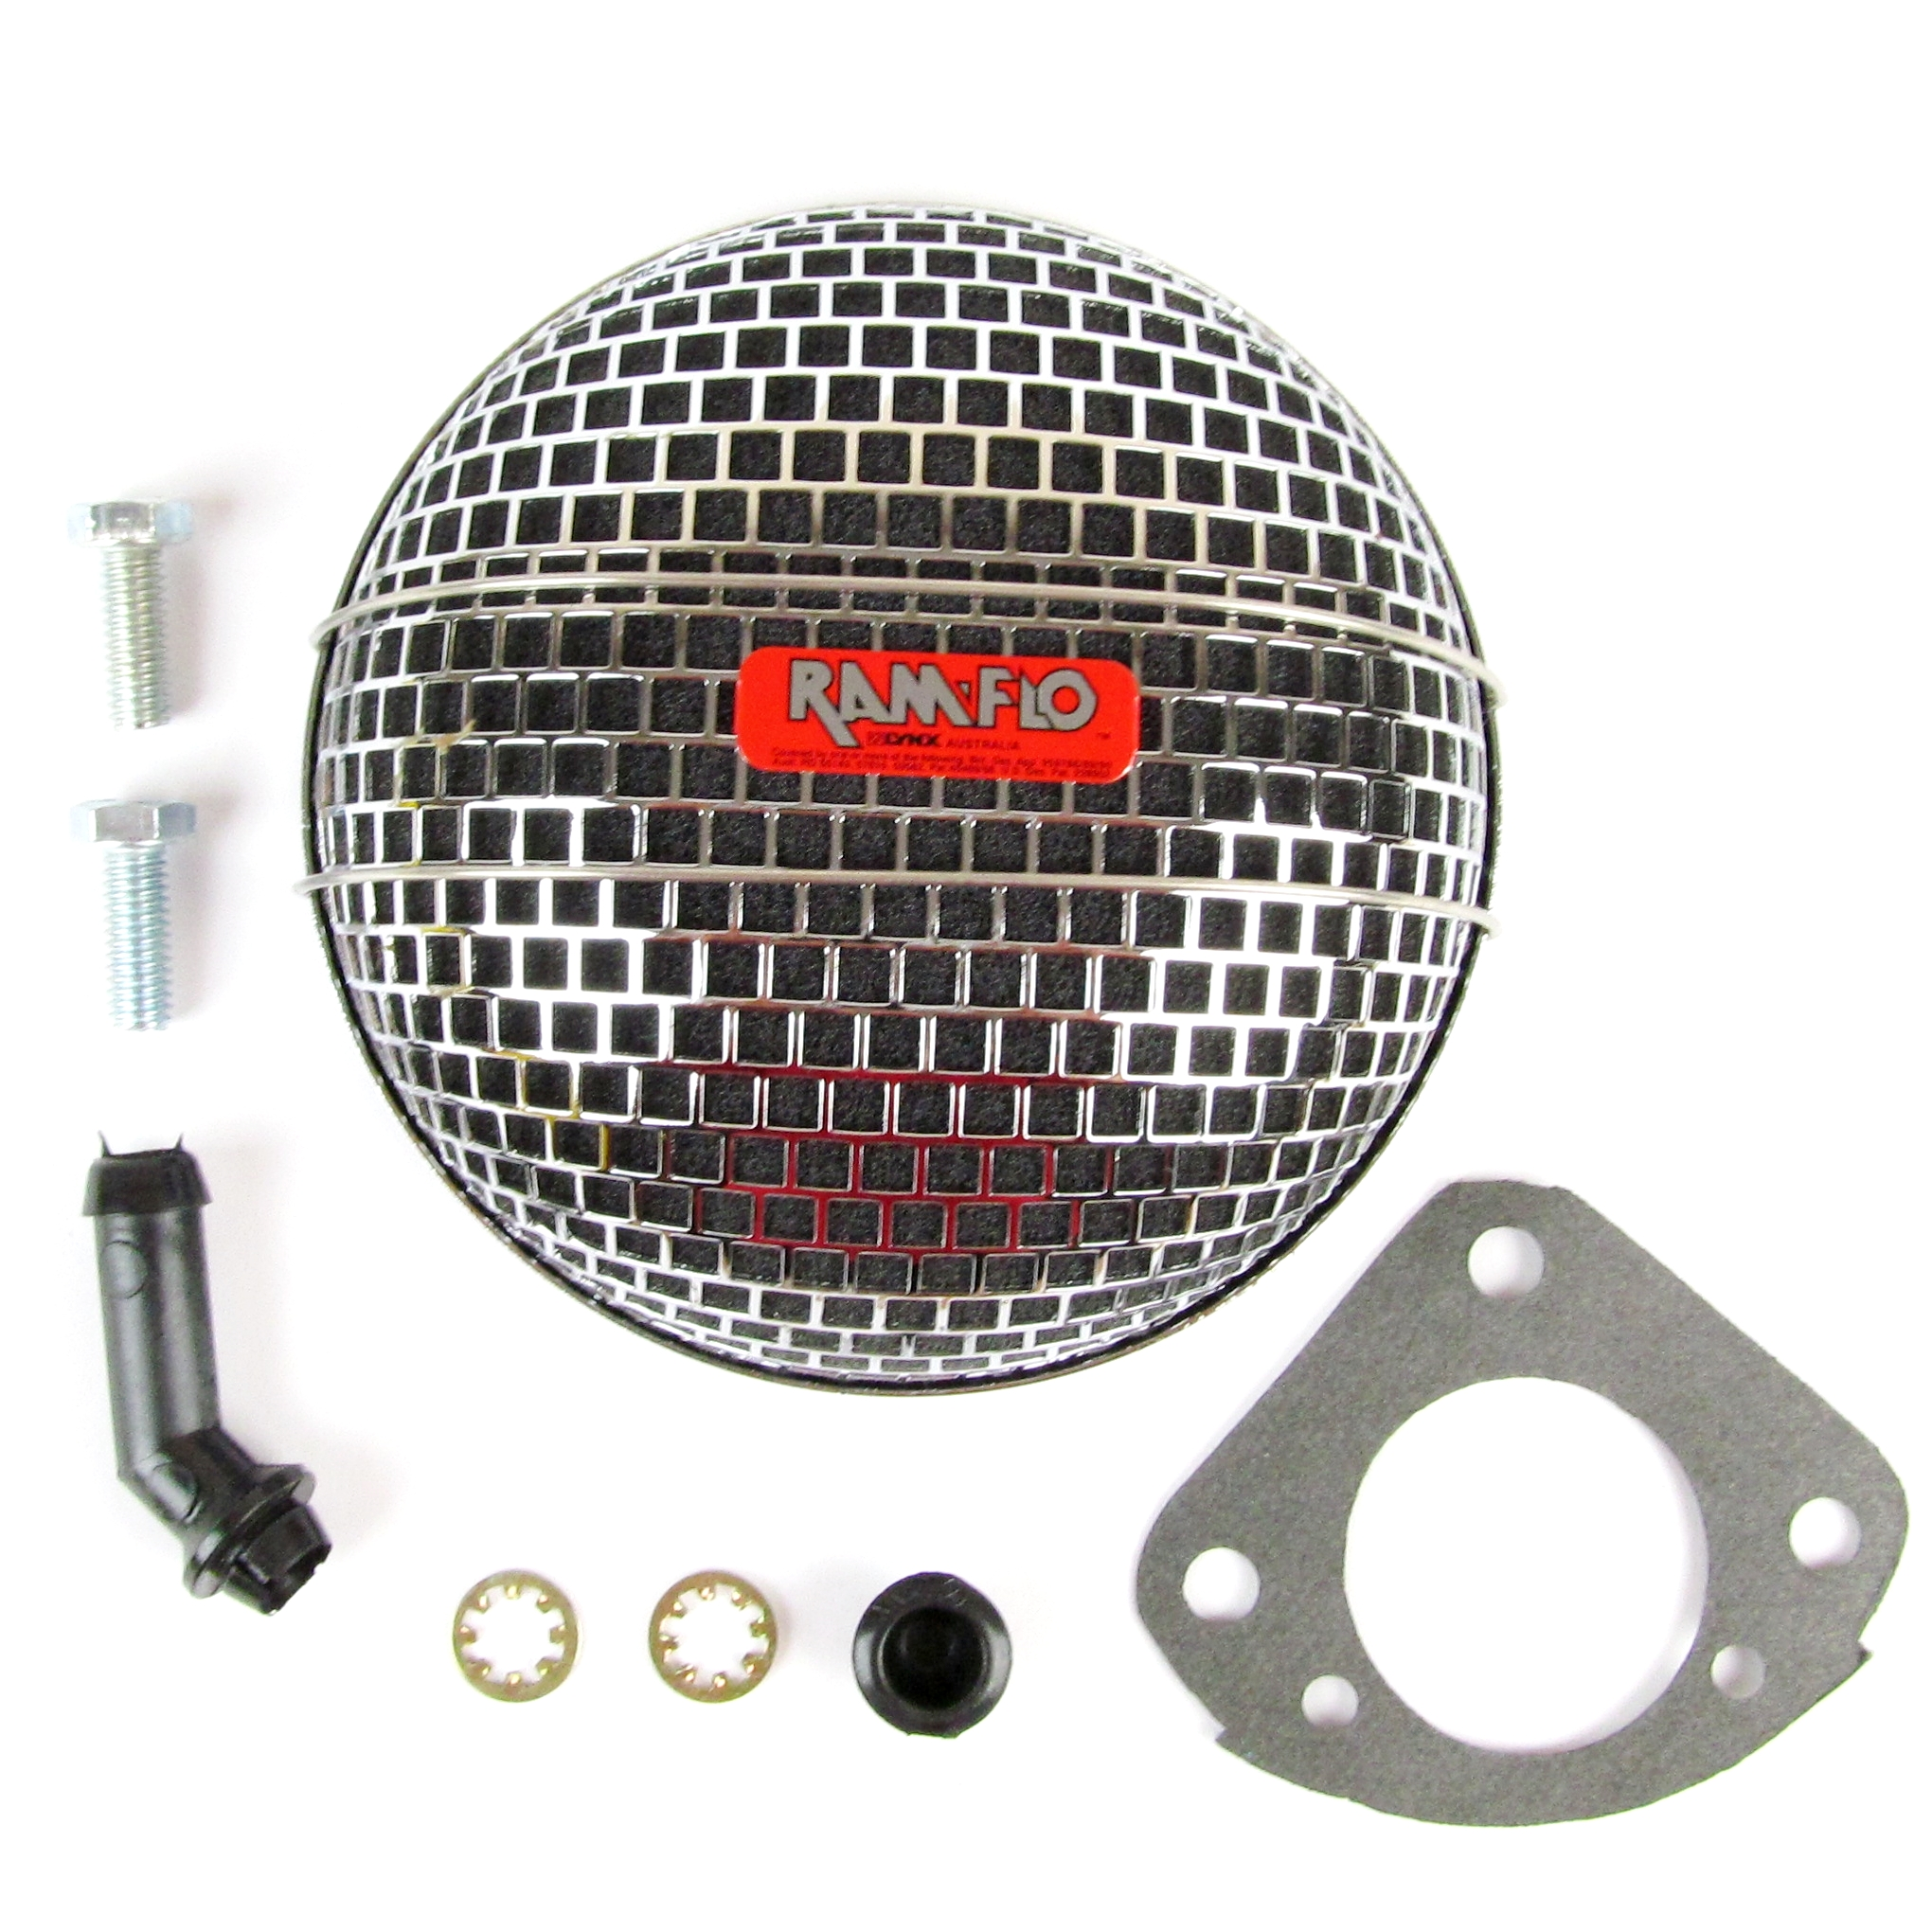 "LYNX RAMFLO AIR FILTER FOR SU HS6 & HD6 1¾"" CARB/CARBURETTOR"